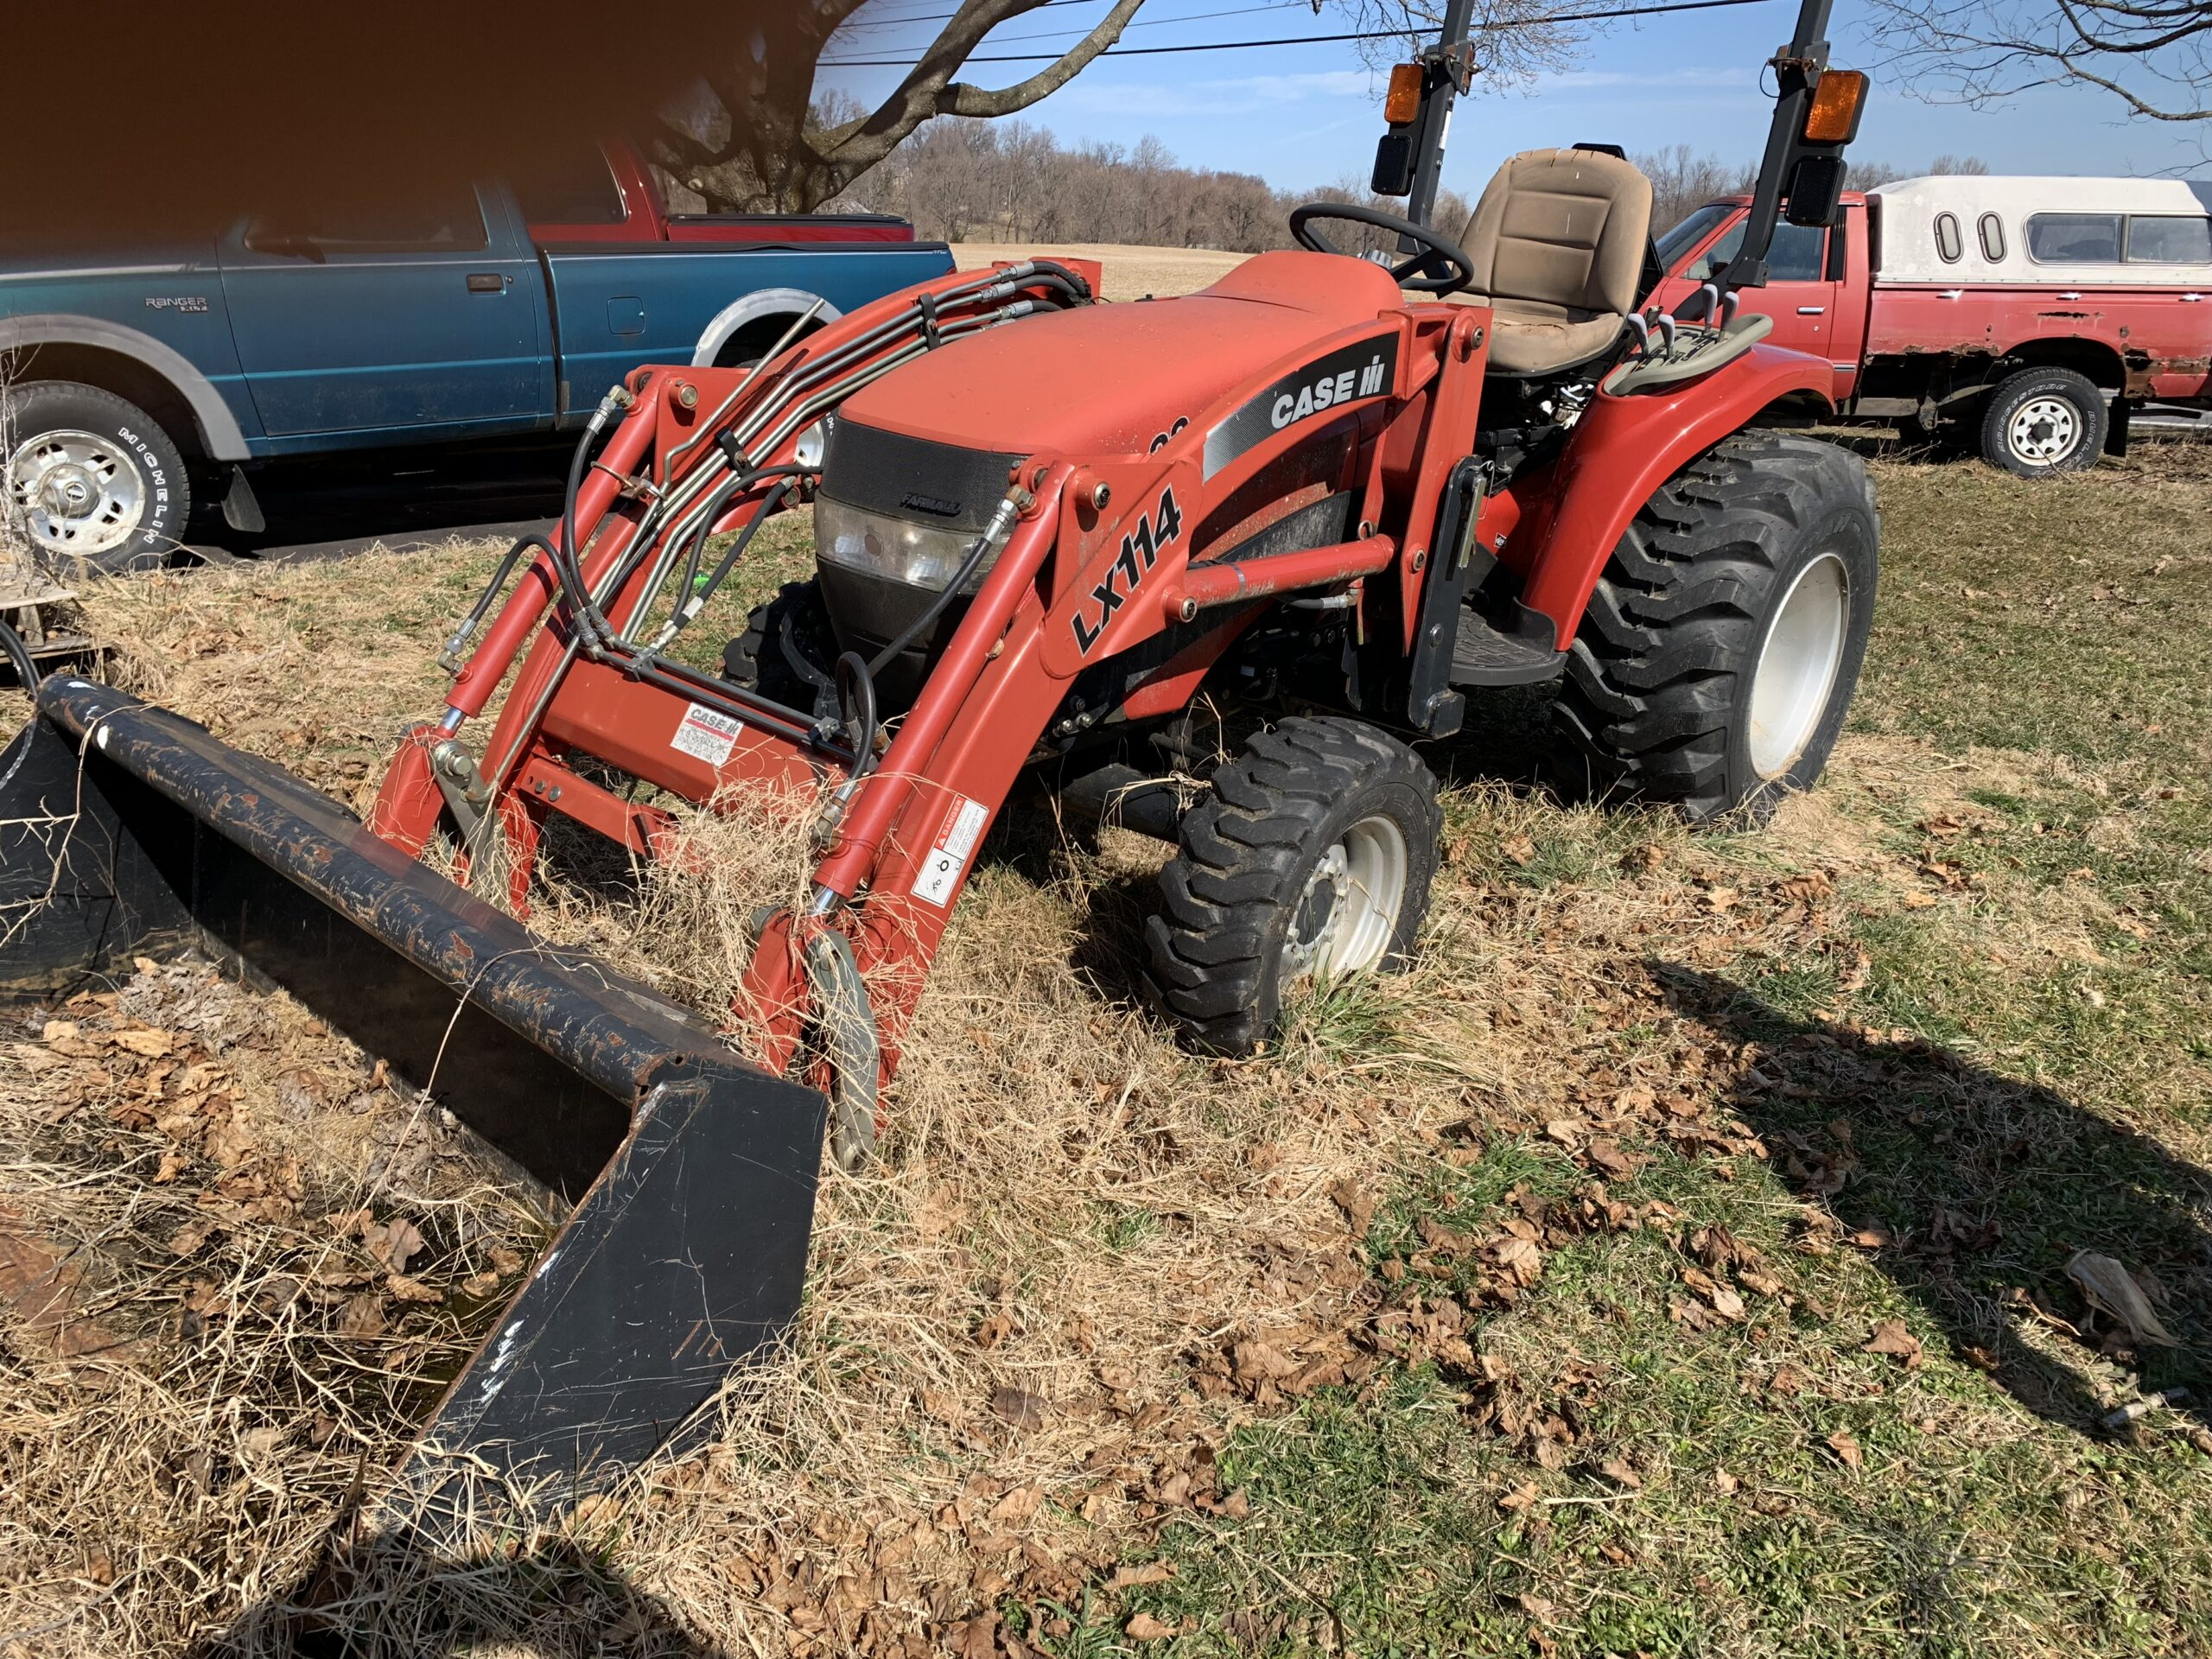 Case Tractor SOLD for $6,600